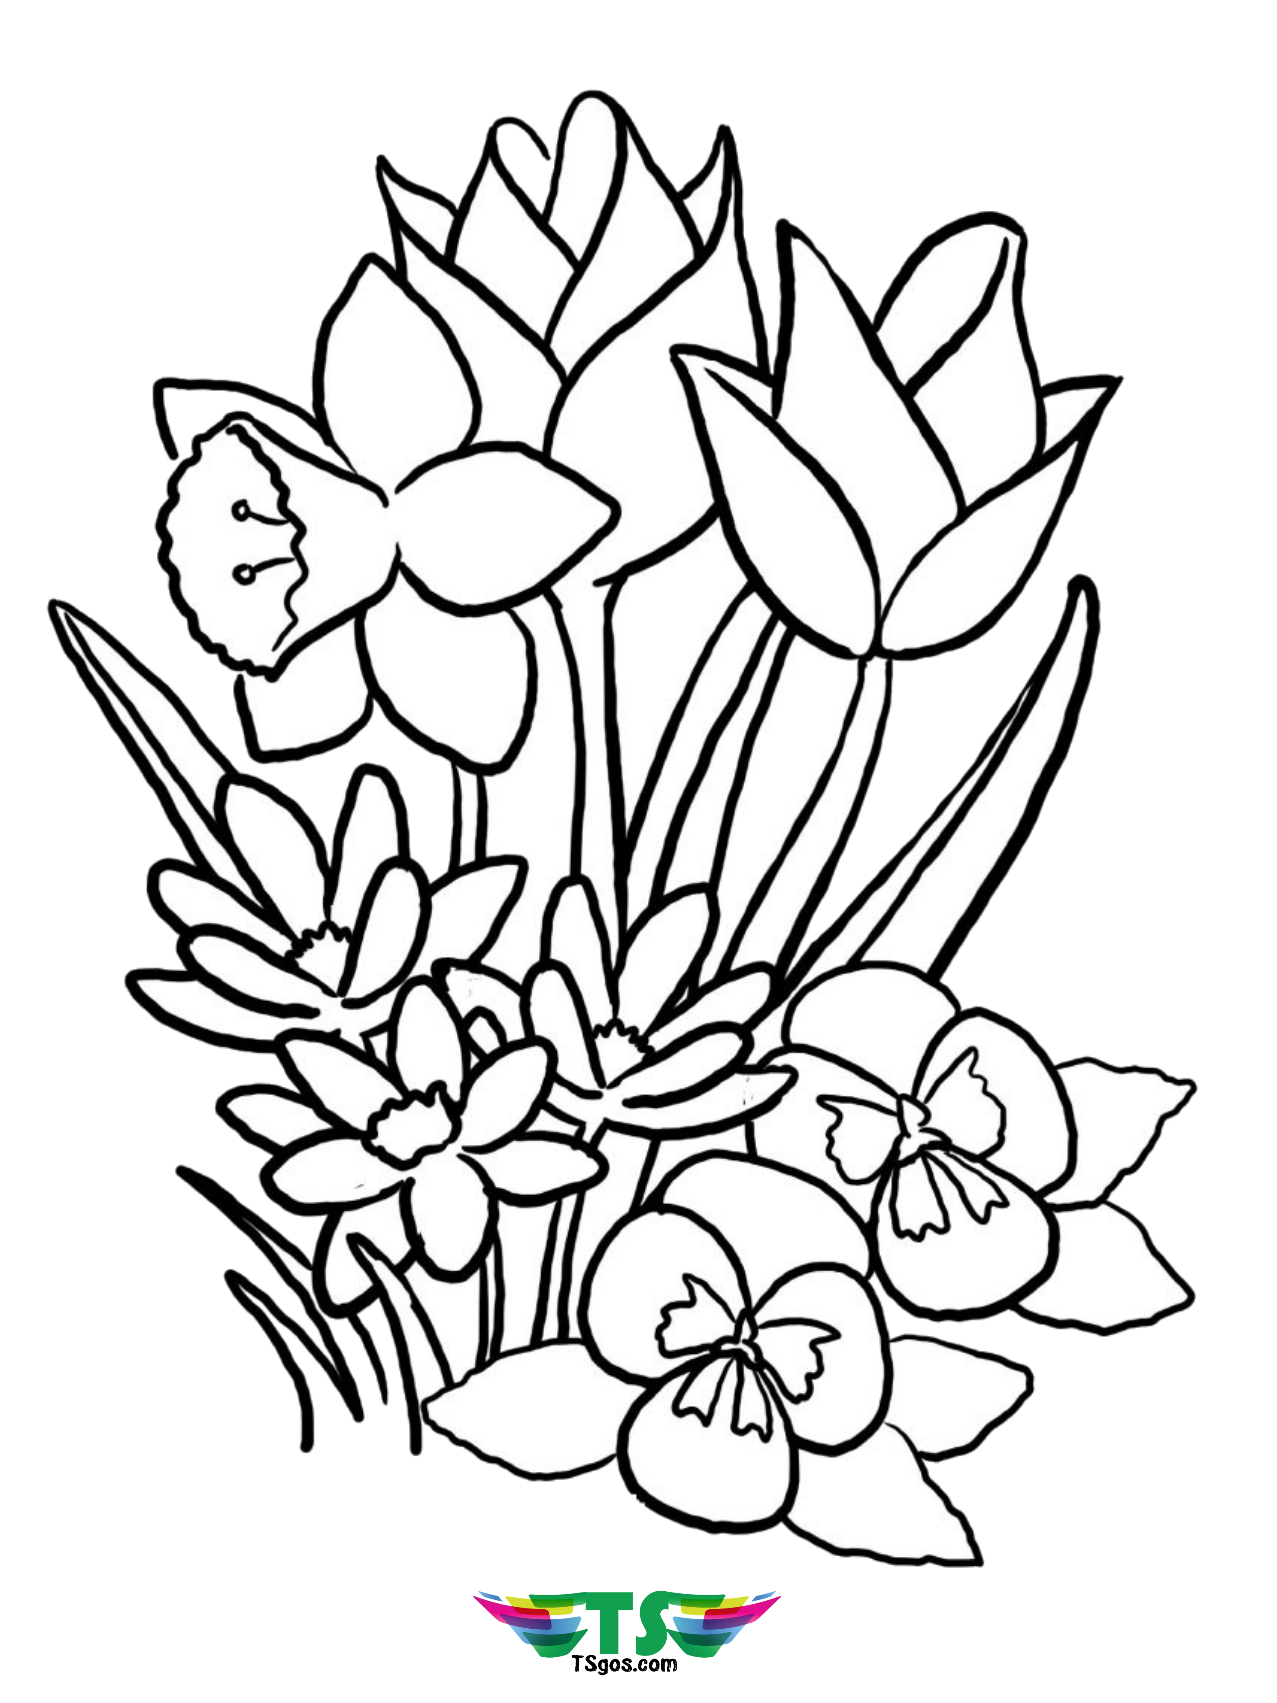 coloring pages about flowers free download to print beautiful spring flower coloring about coloring pages flowers